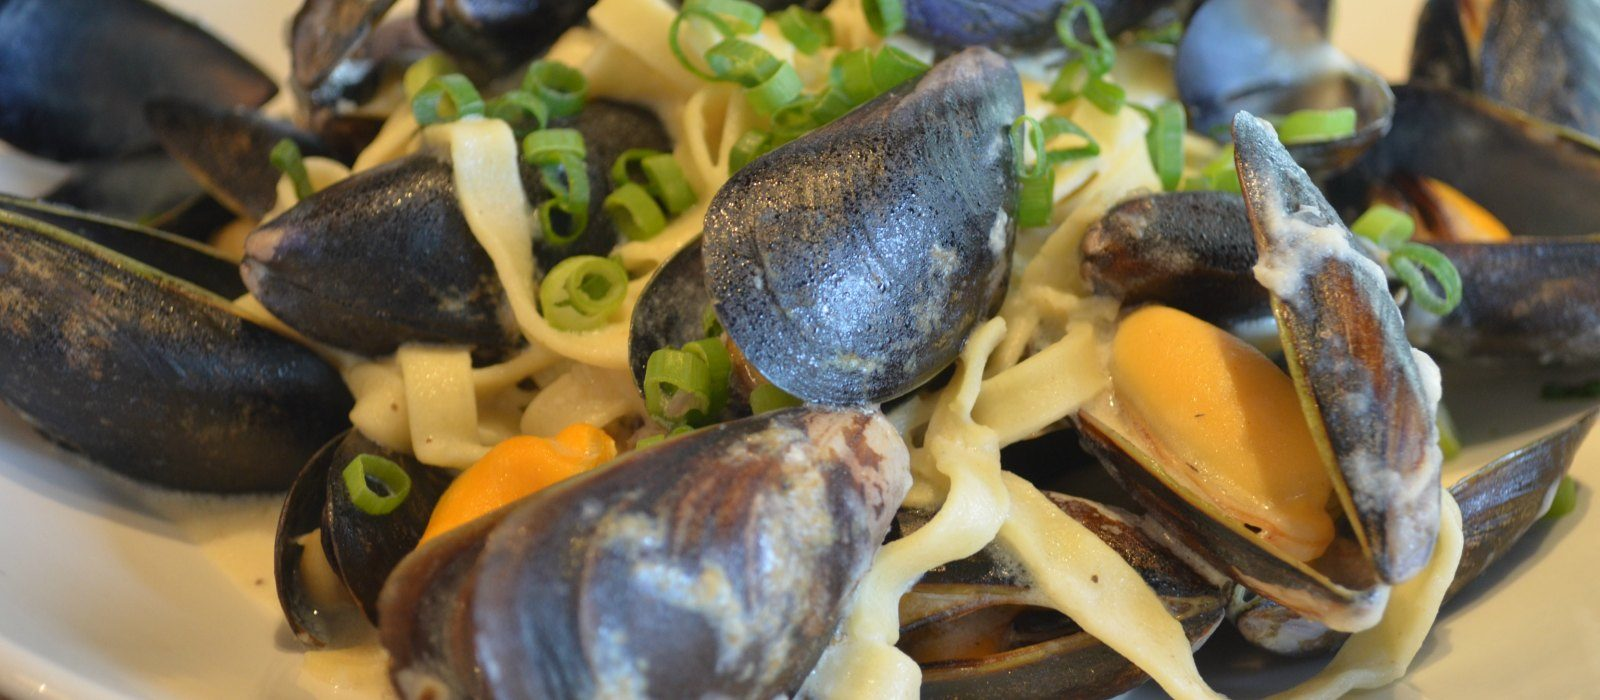 Creamy Mussels with Garlic, Parmesan and Pasta